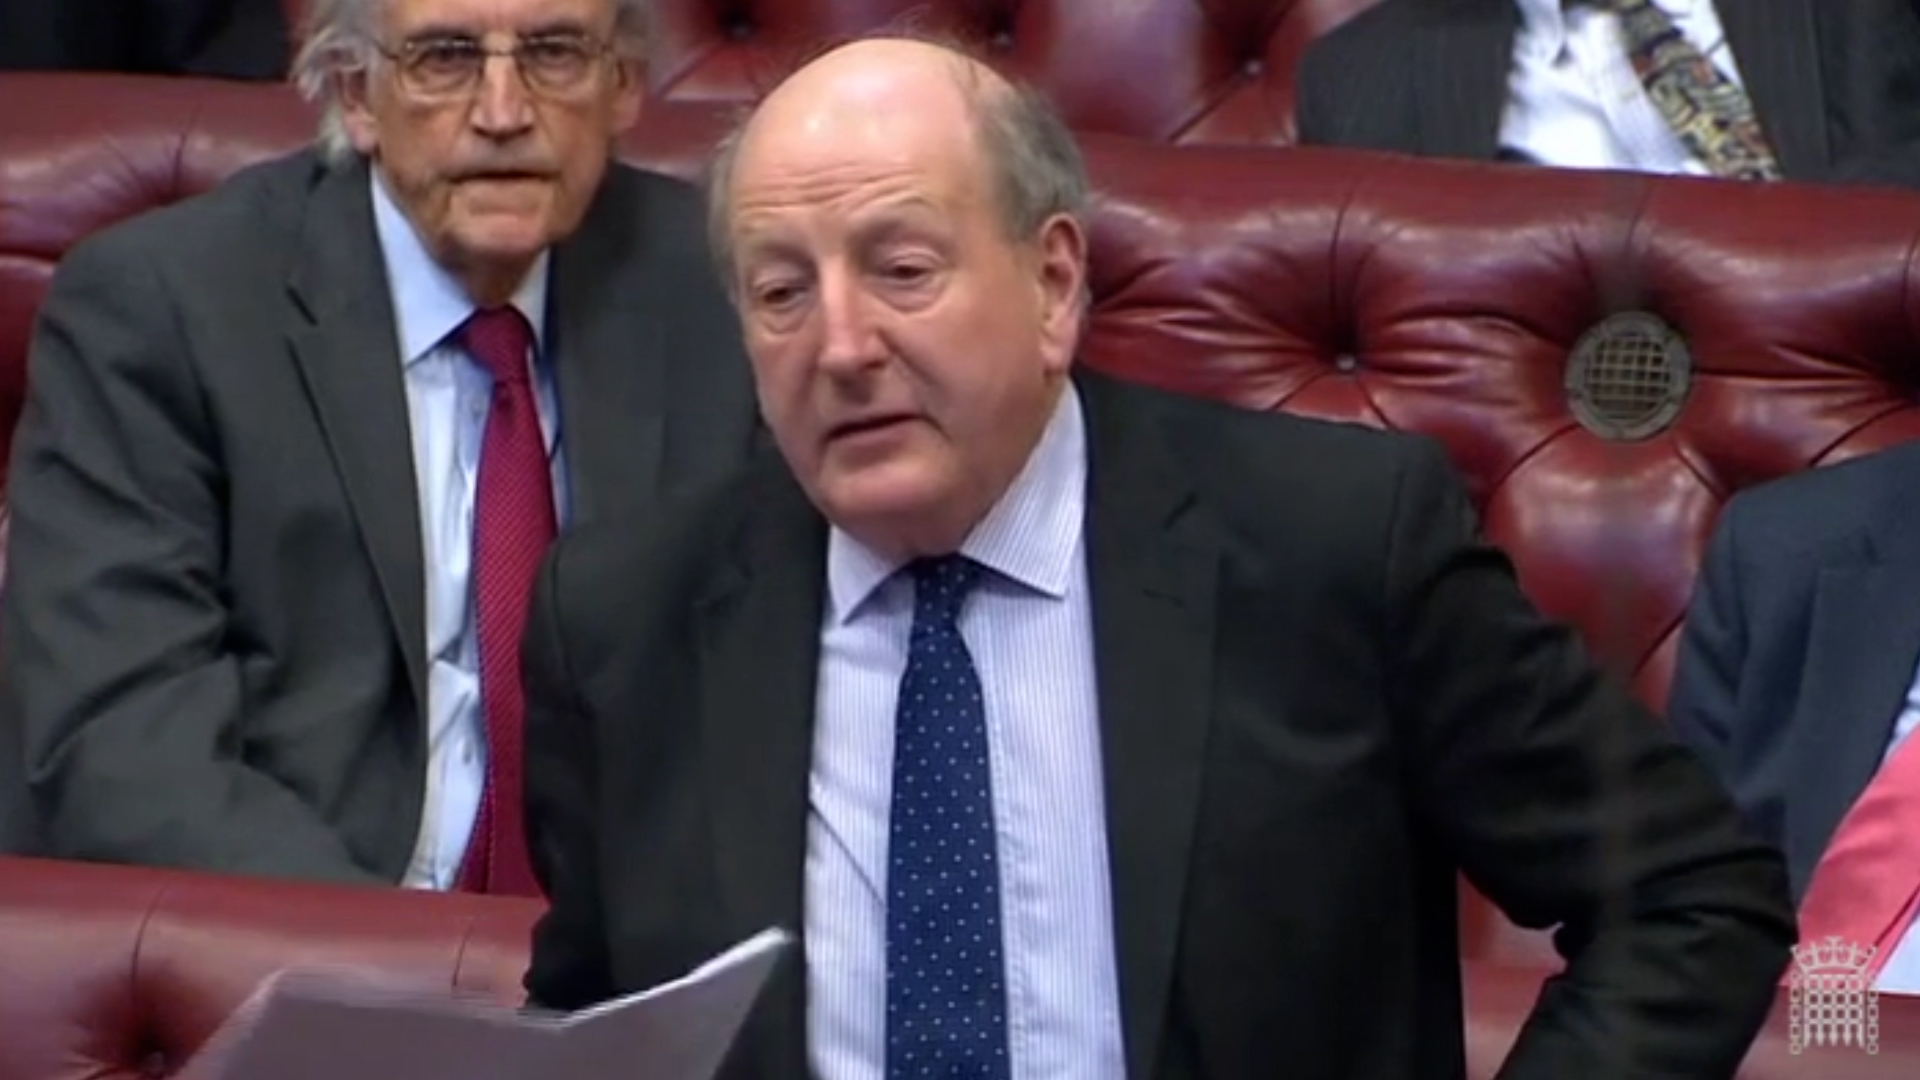 Lord Berkeley speaking in the House of Lords